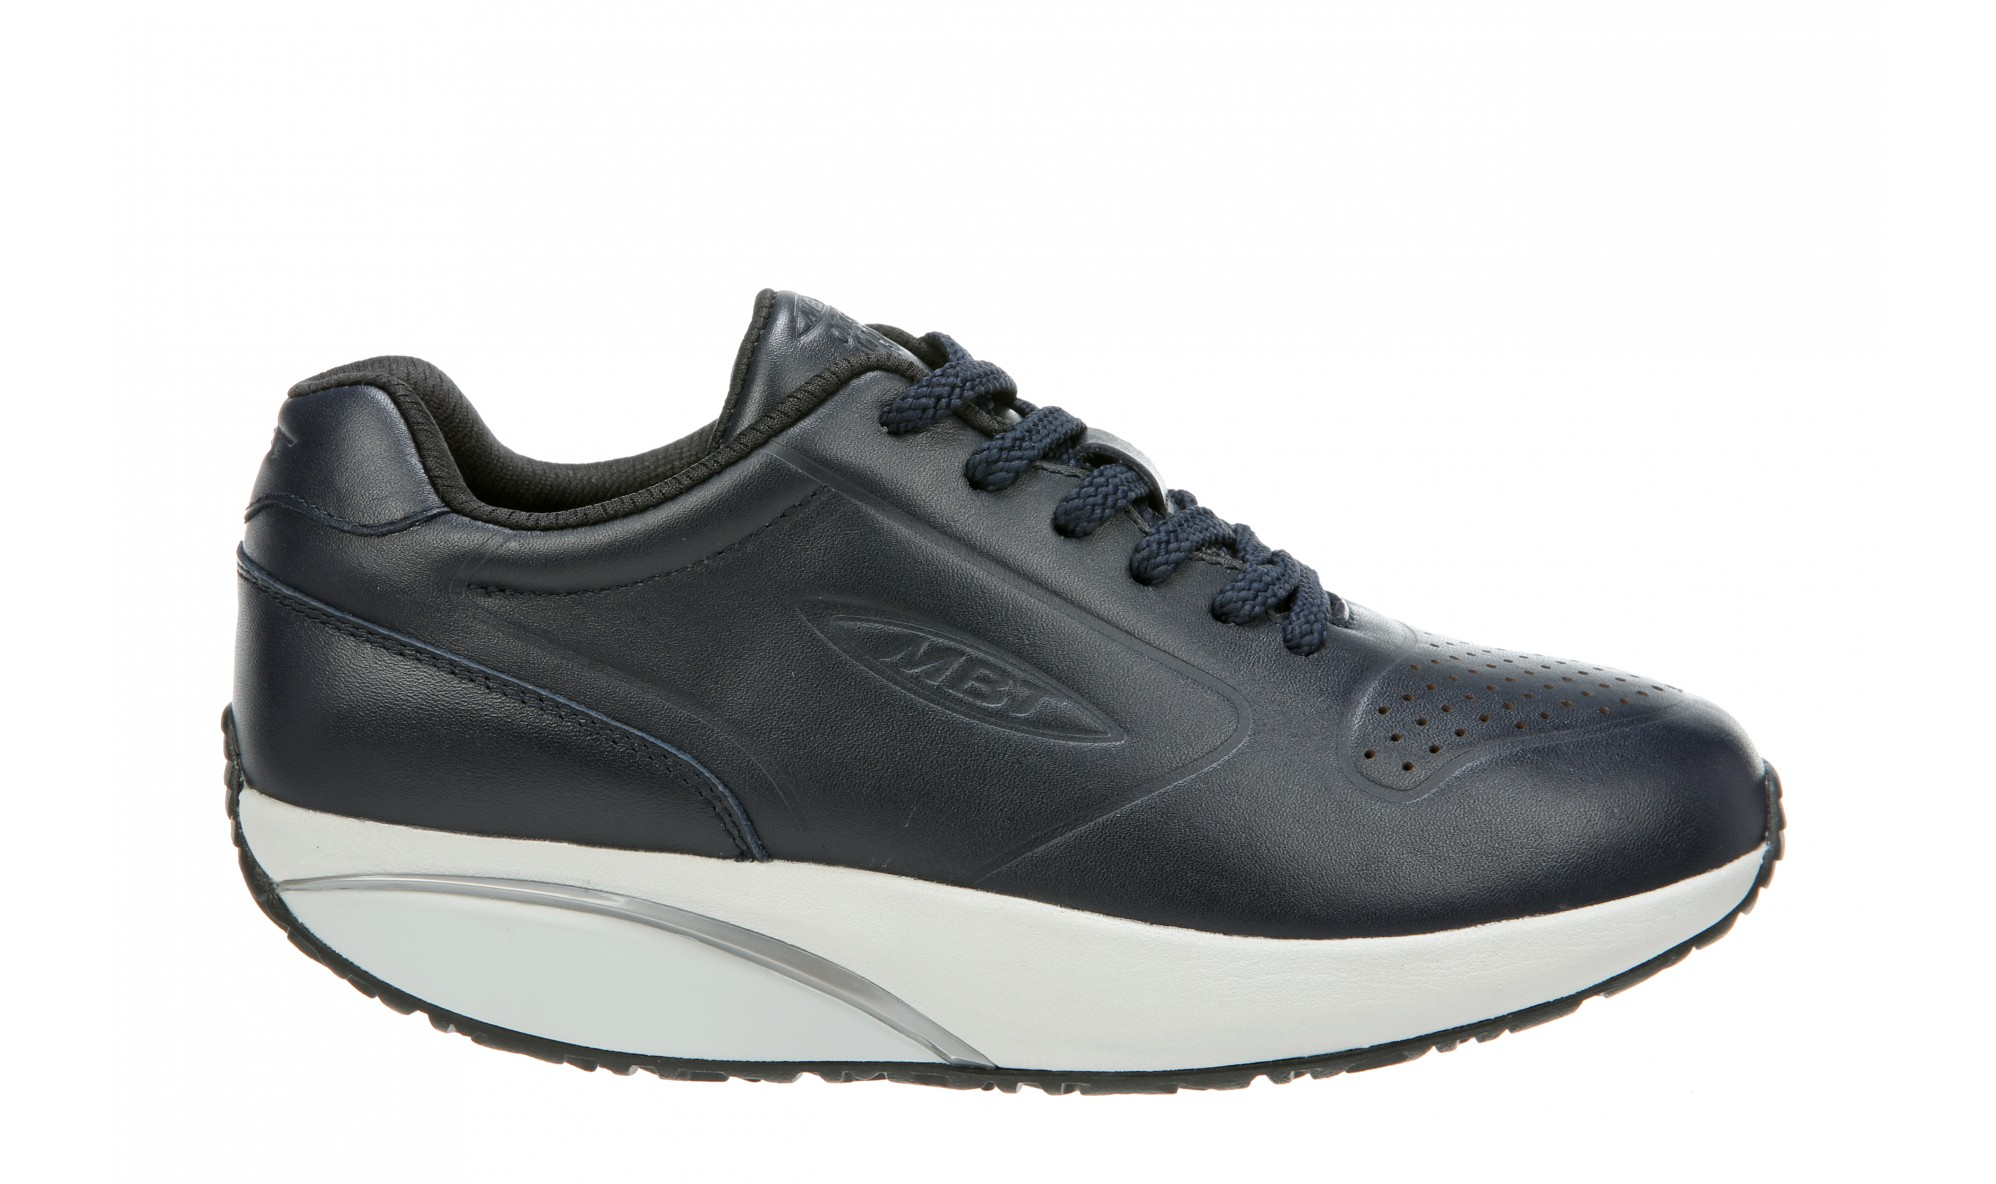 MBT 1997 Special Edition - Men's - Navy Leather